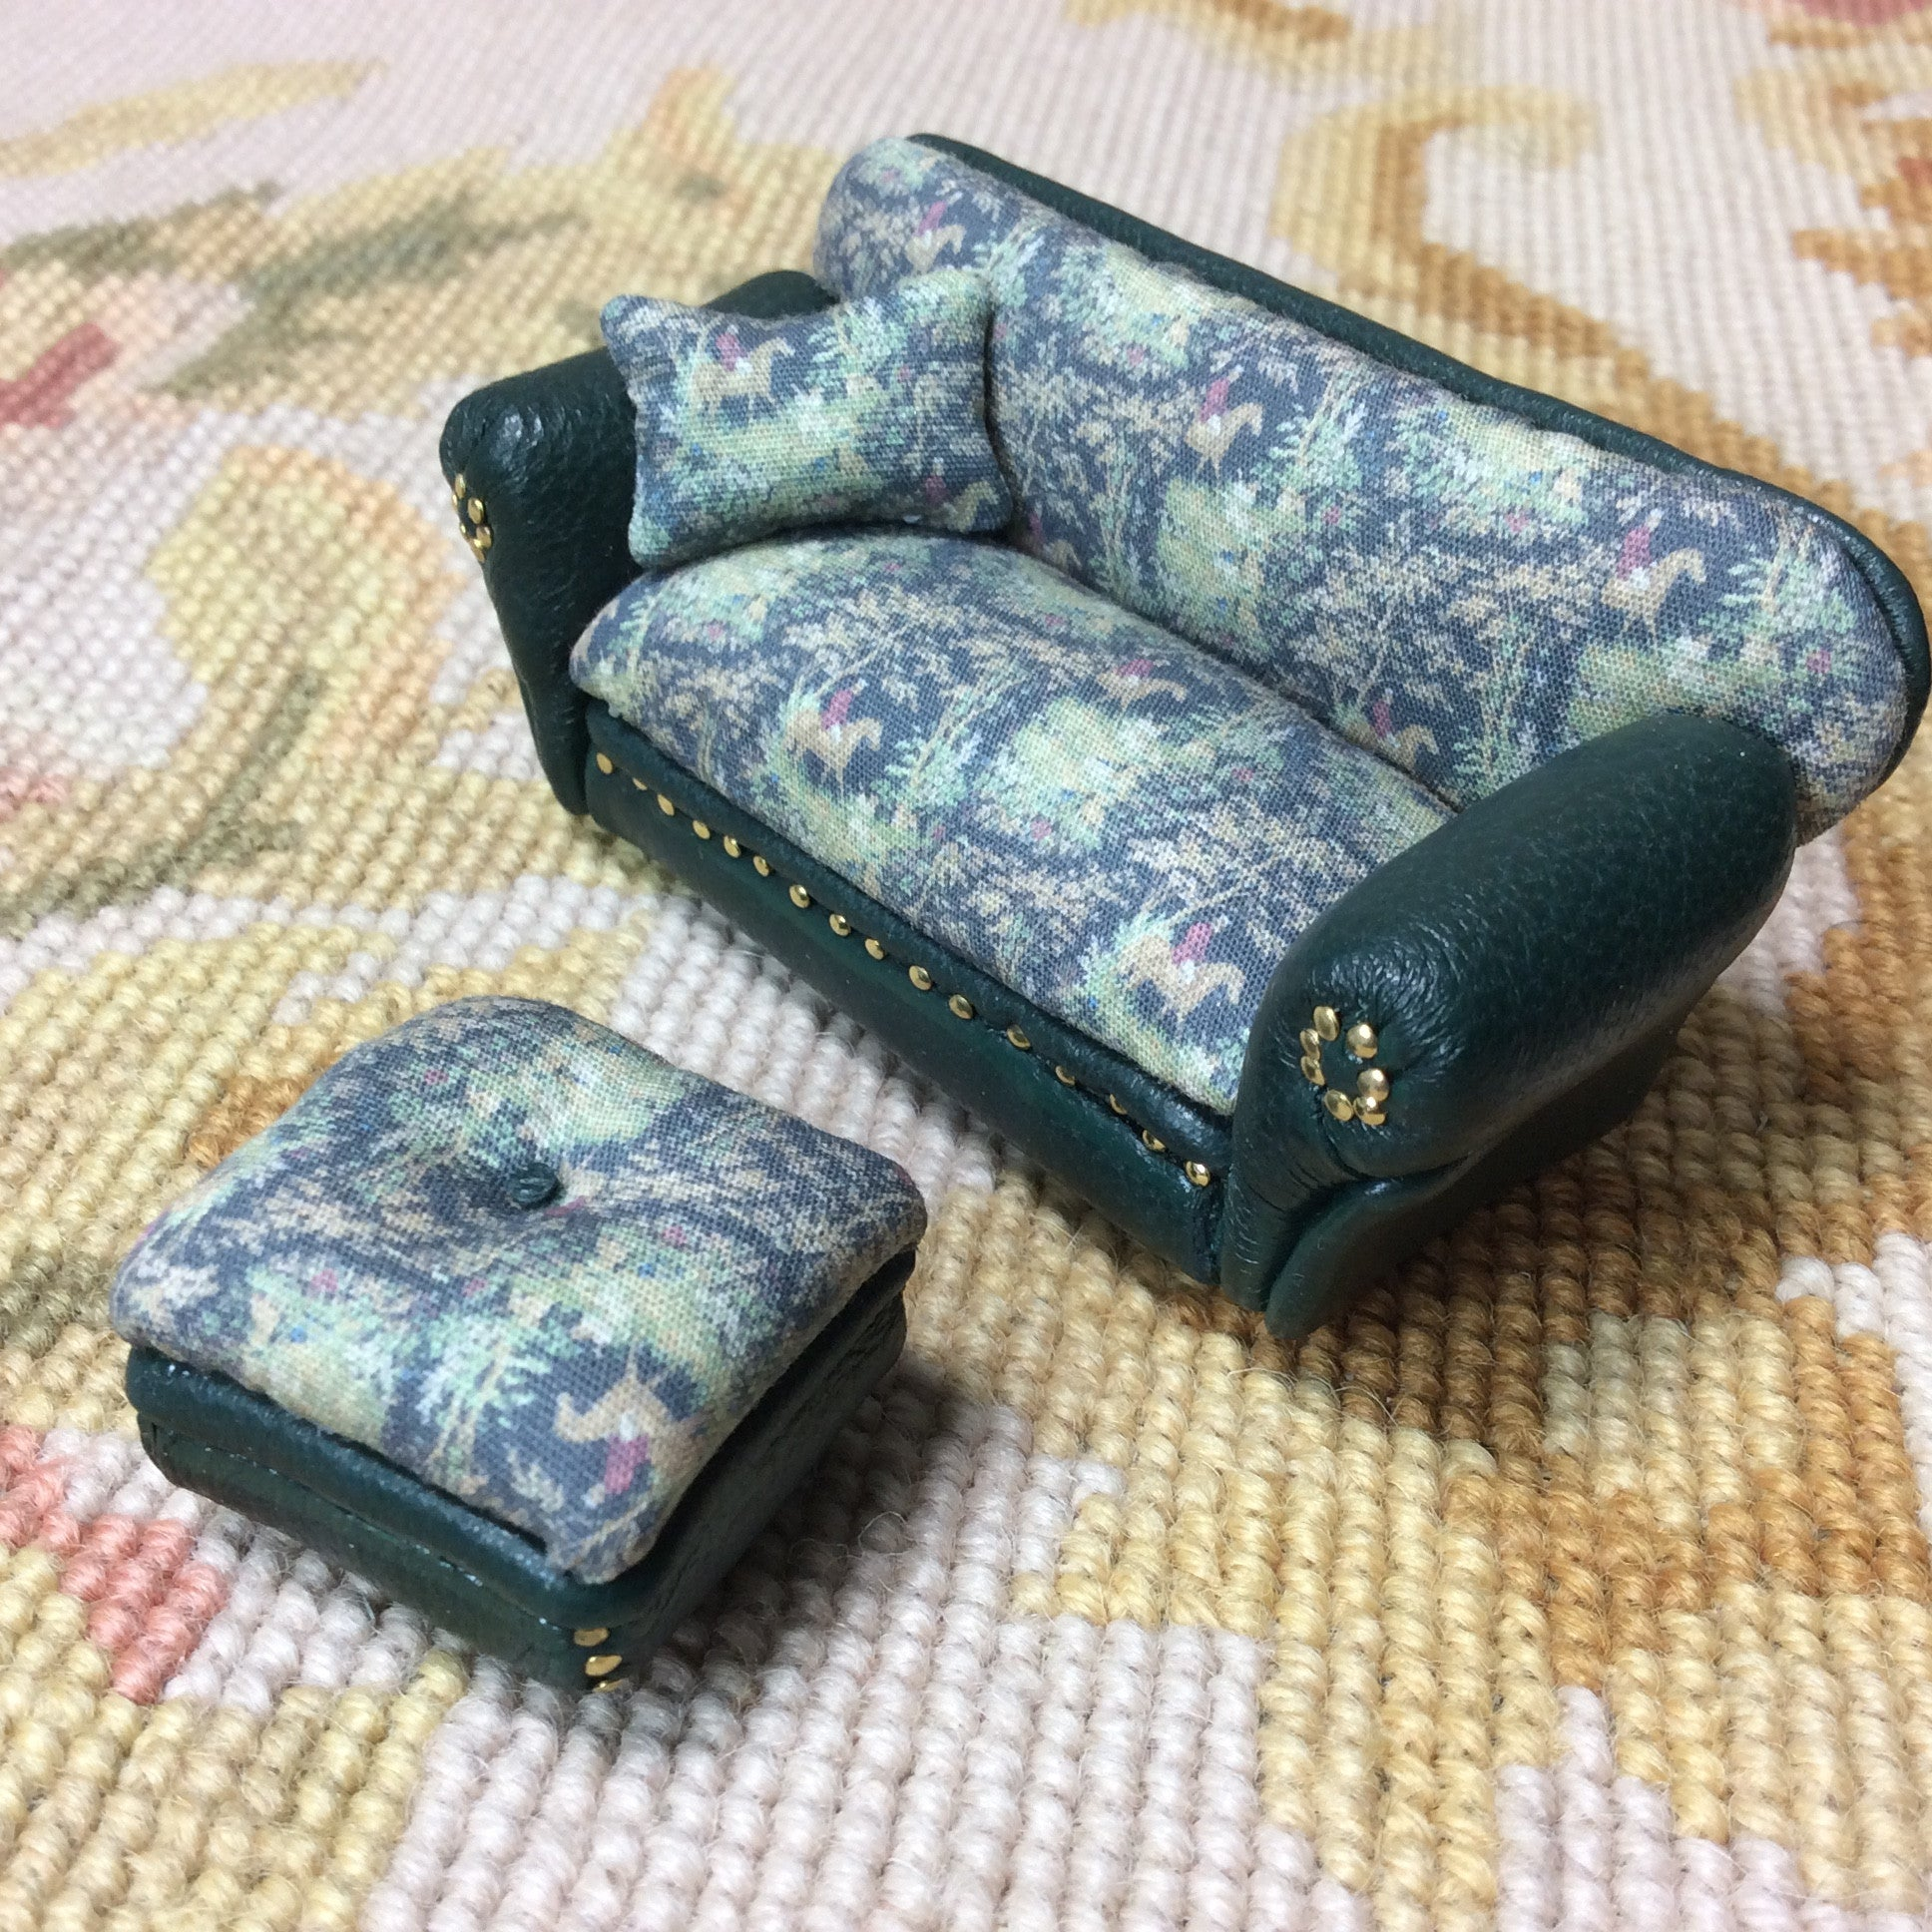 "1/2"" Half Inch OOAK Leather & Hunt Fabric Sofa Couch Seat 1:24 Scale SPECIAL ORDER Dollhouse Miniature"